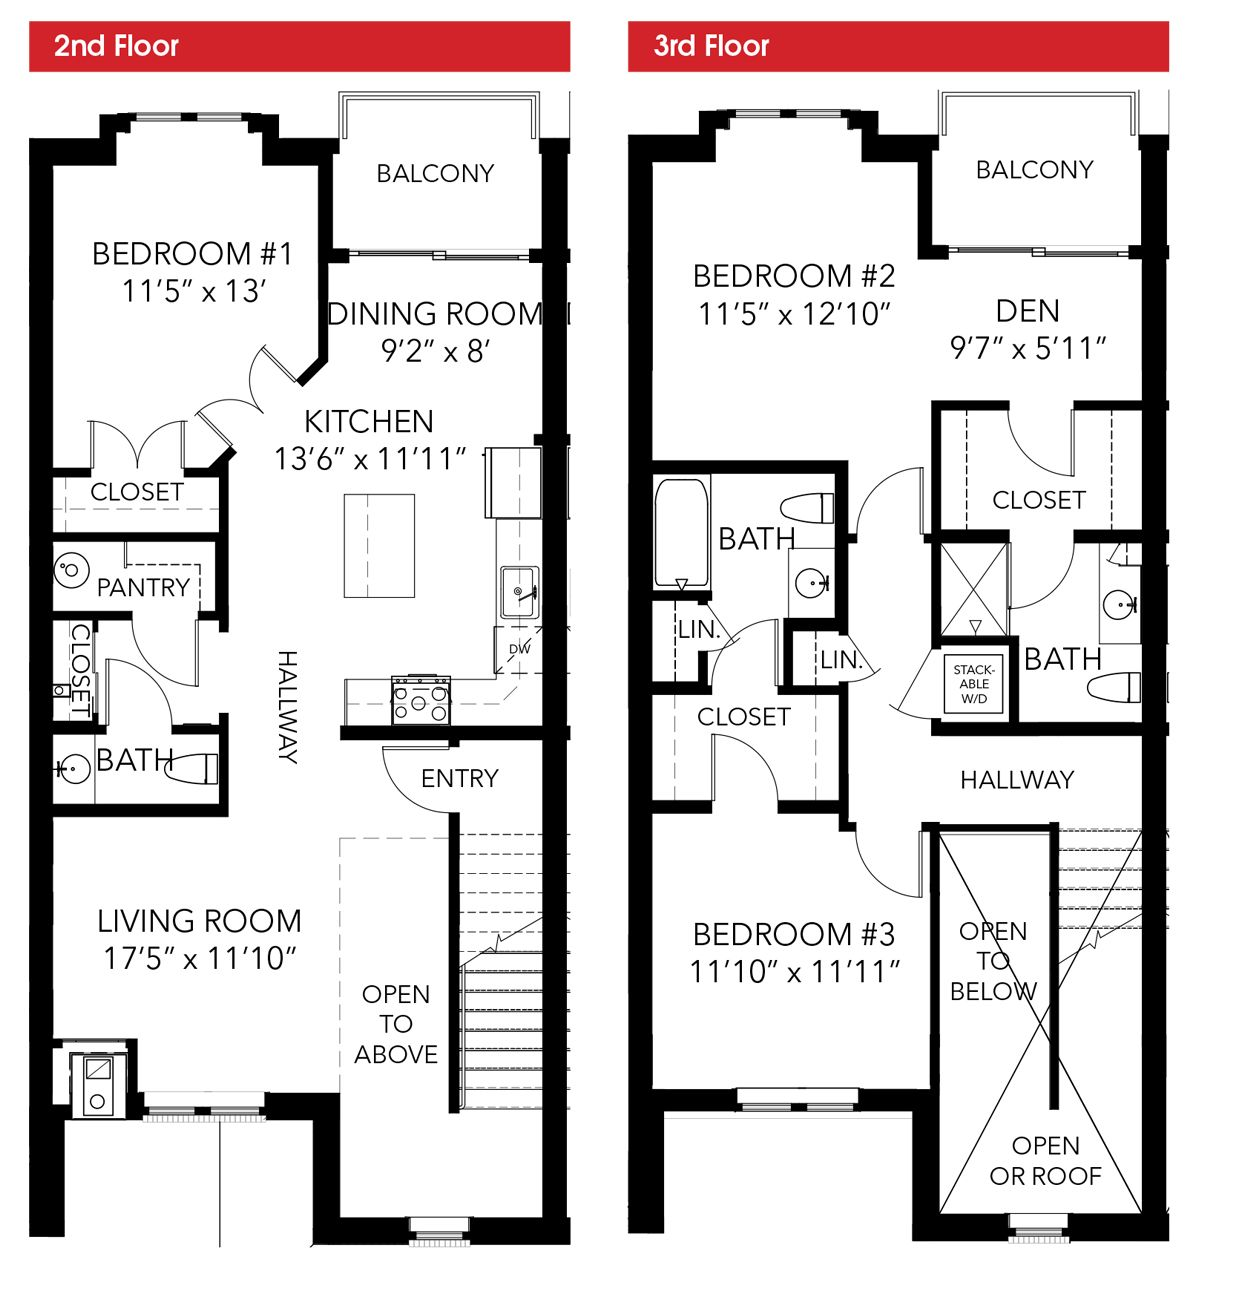 Oakbourne floor plan 3 bedroom 2 story leed certified for 2 story 2 bedroom apartment plans